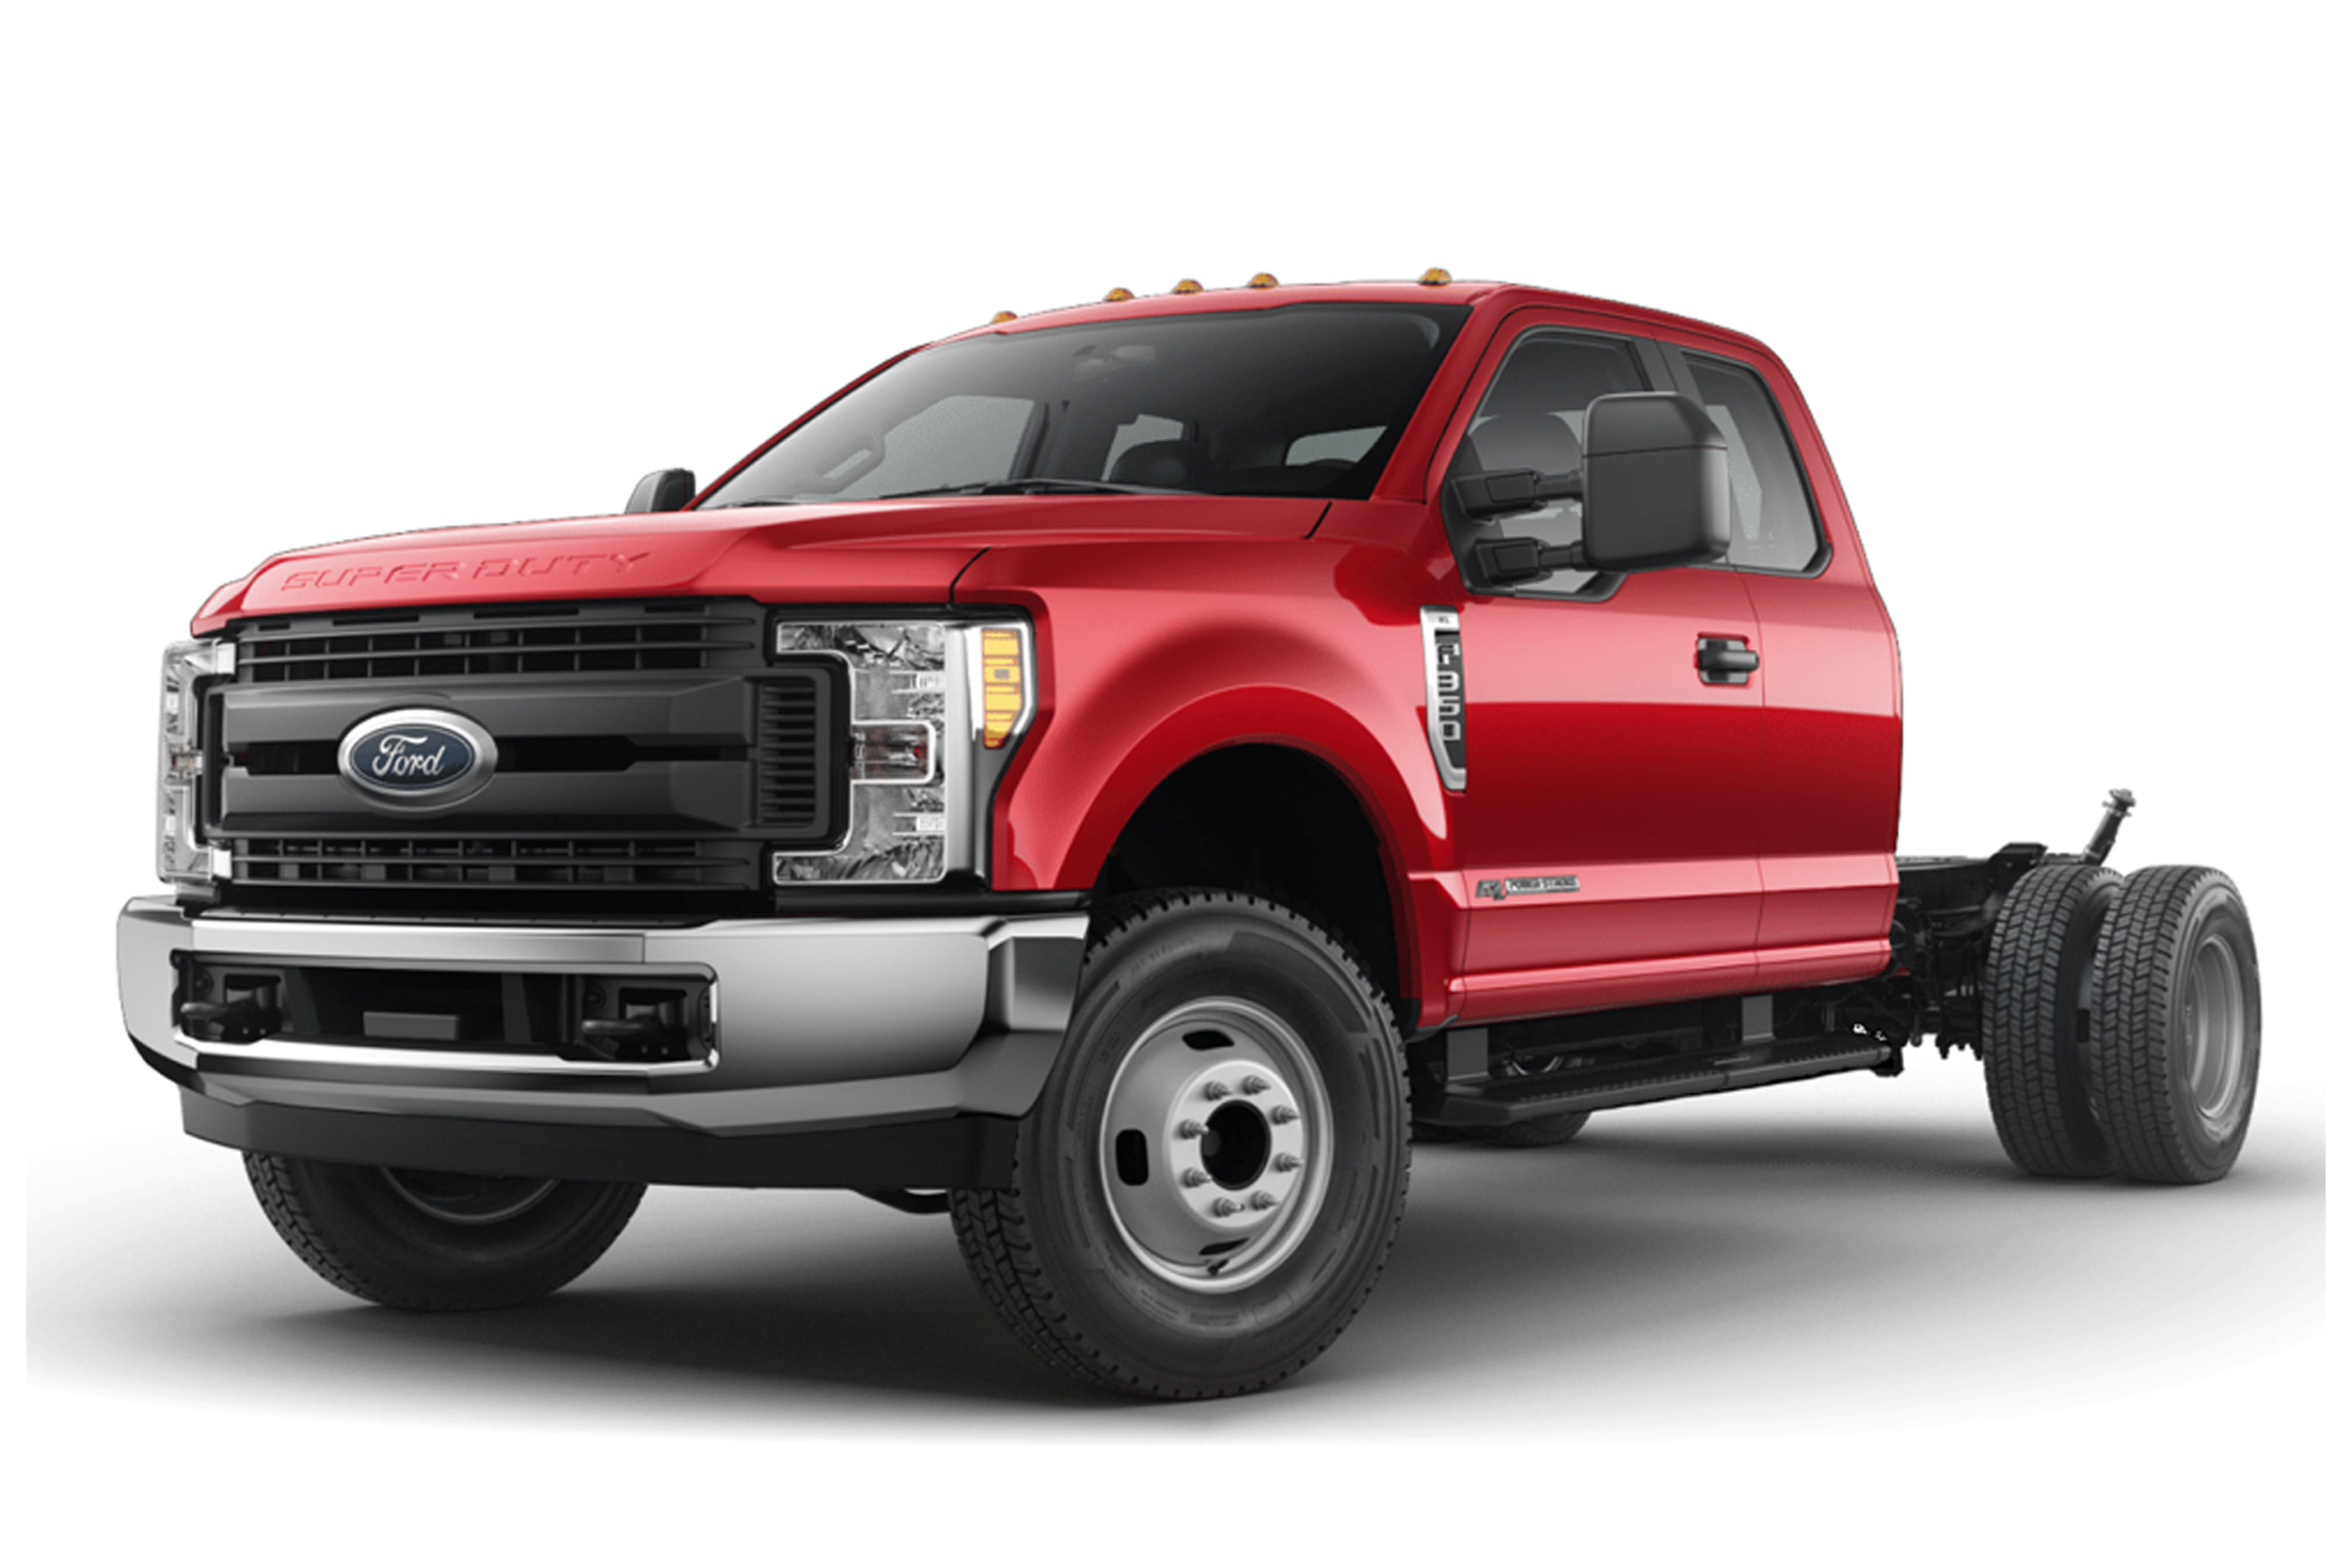 Ford F-350 Super Duty Chassis Cab - MSN Autos